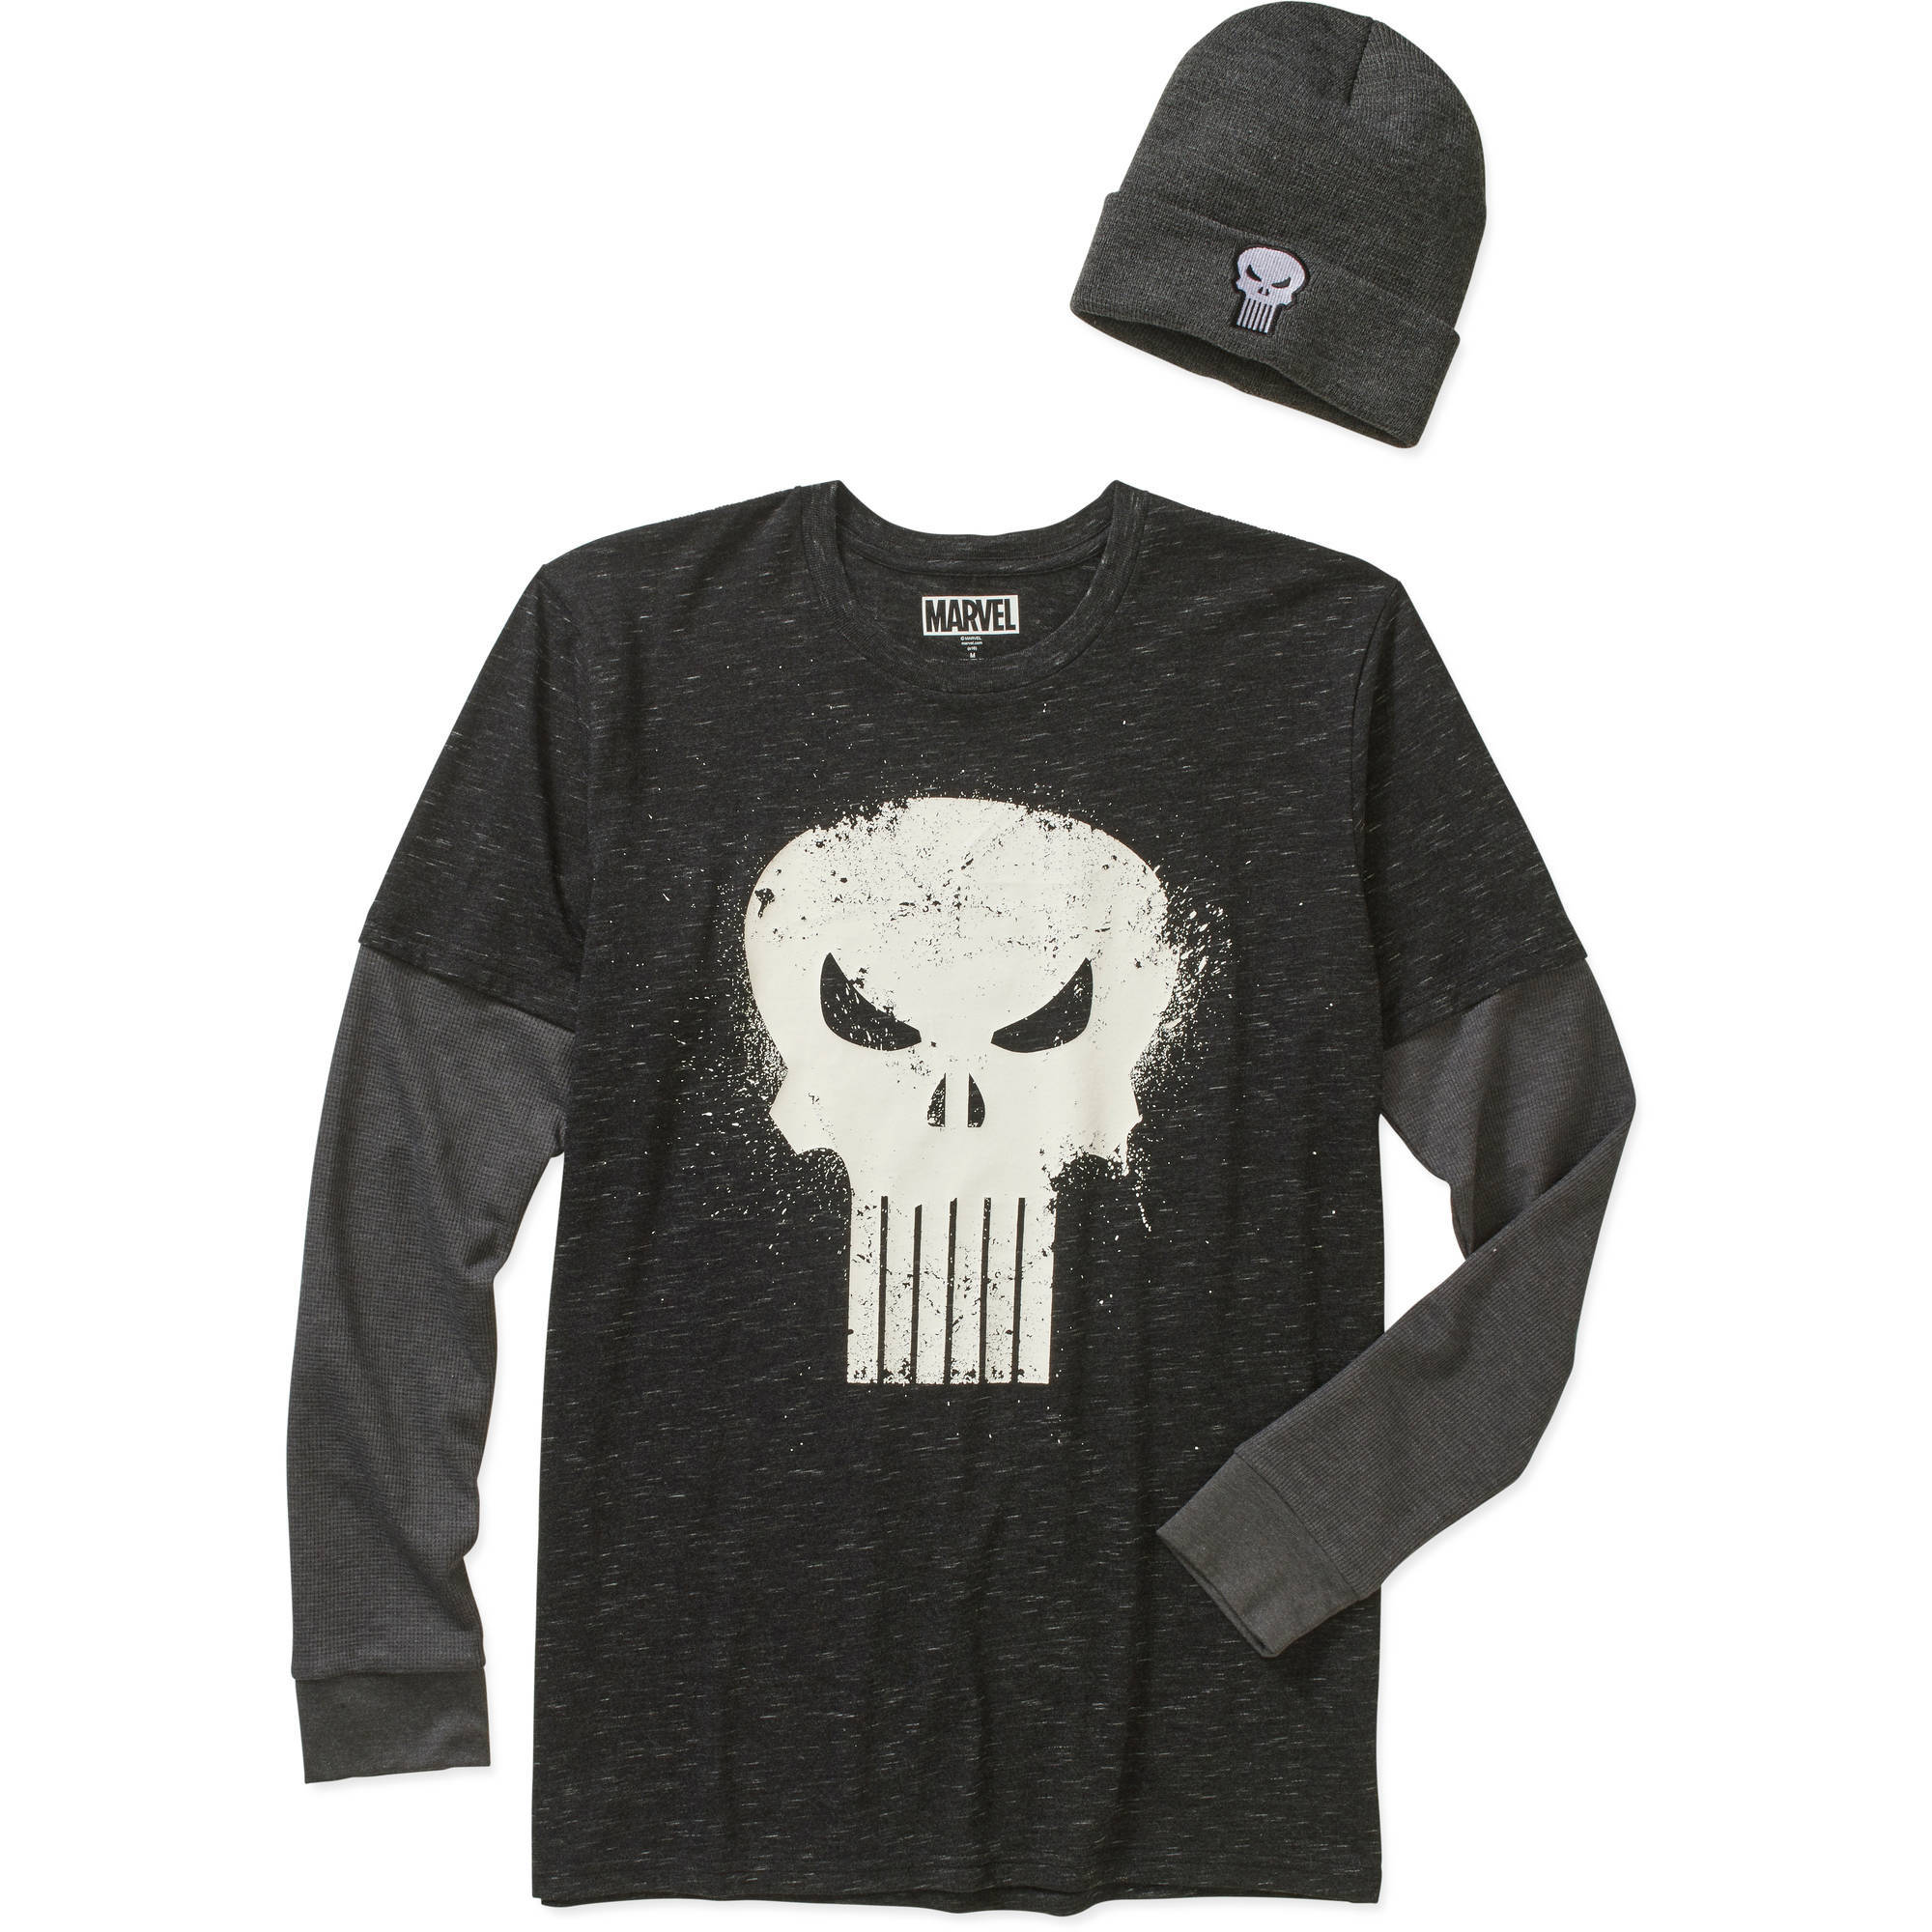 Punisher Men's Shirt & Beanie Combo